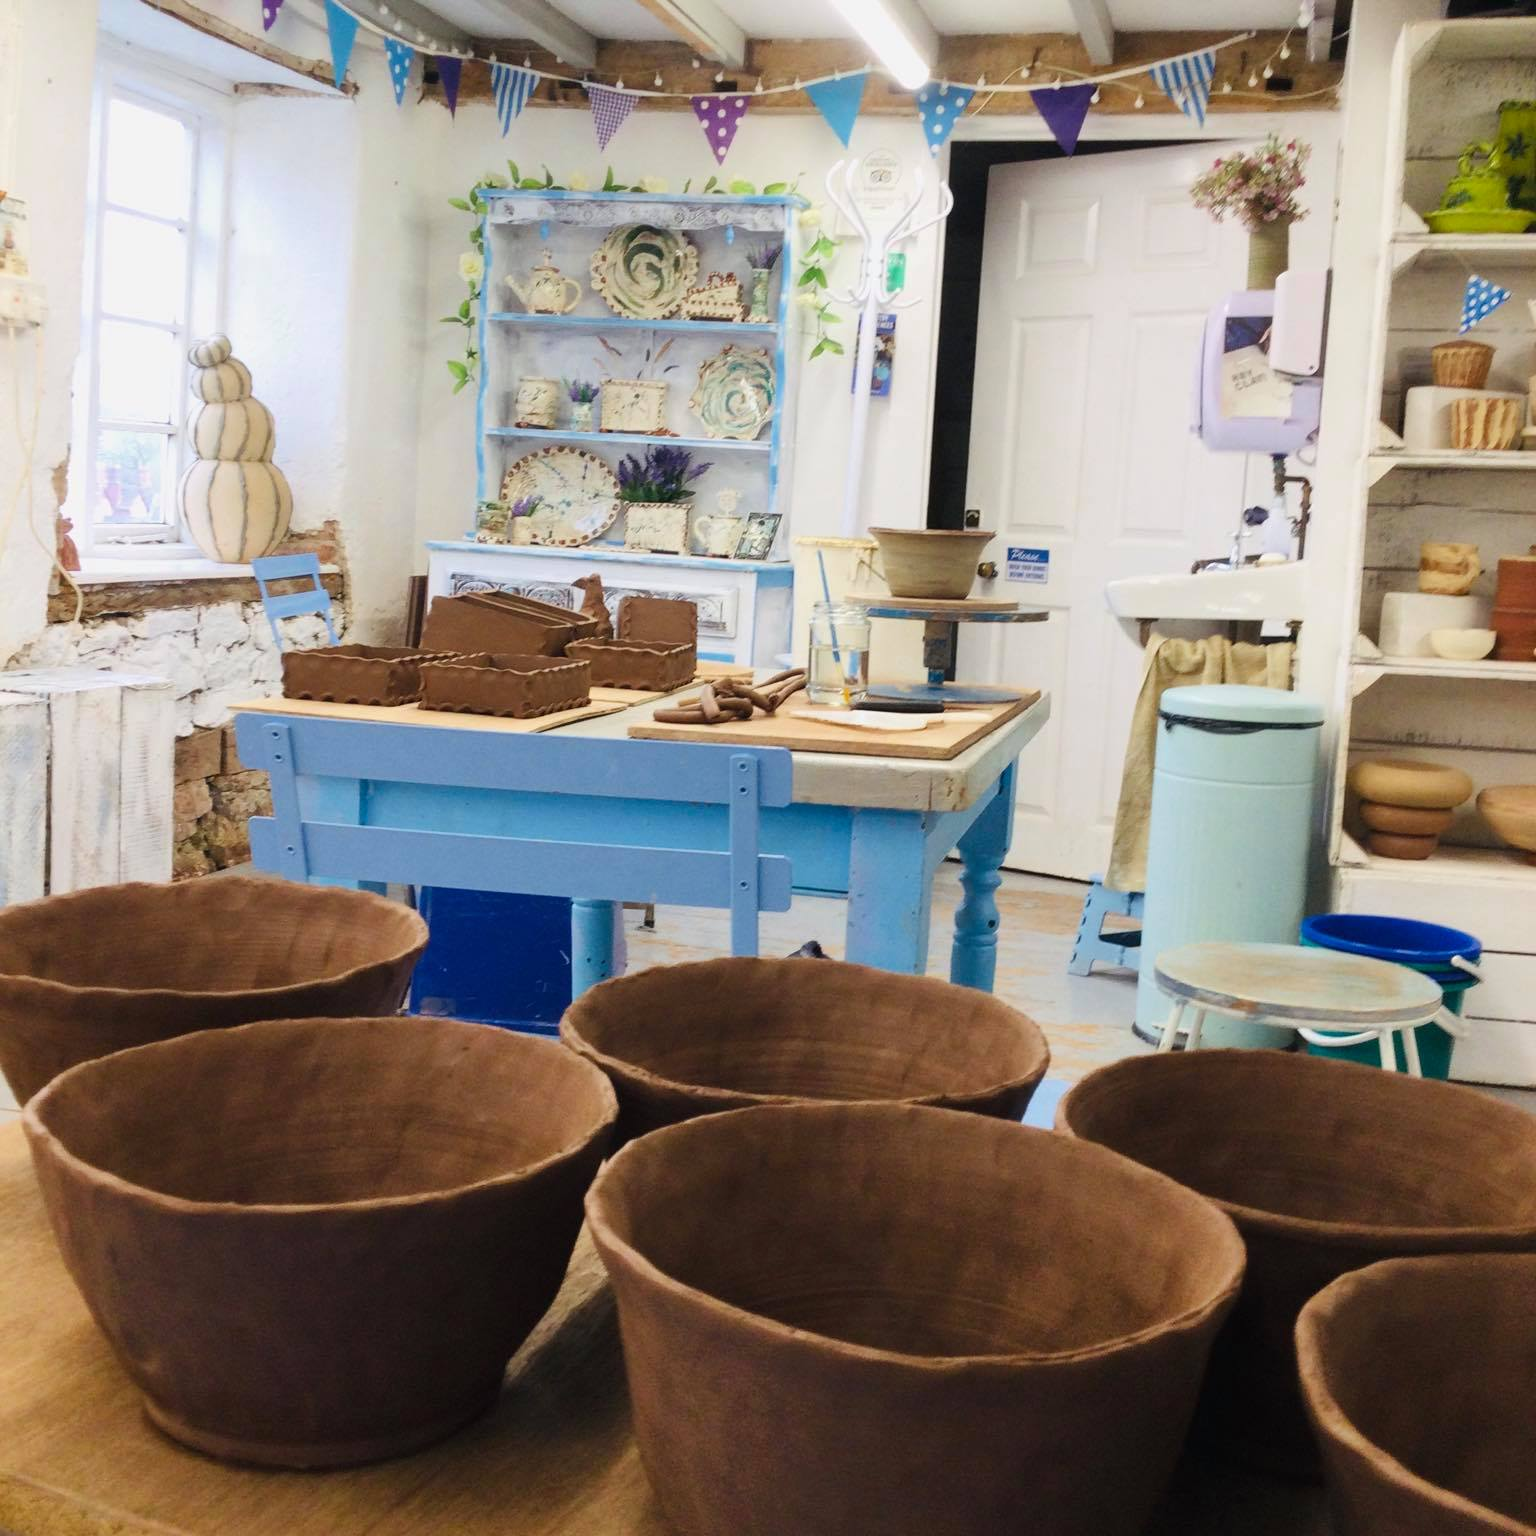 terracotta clay pots waiting to be decorated with slip in the studio of sarah monk ceramics